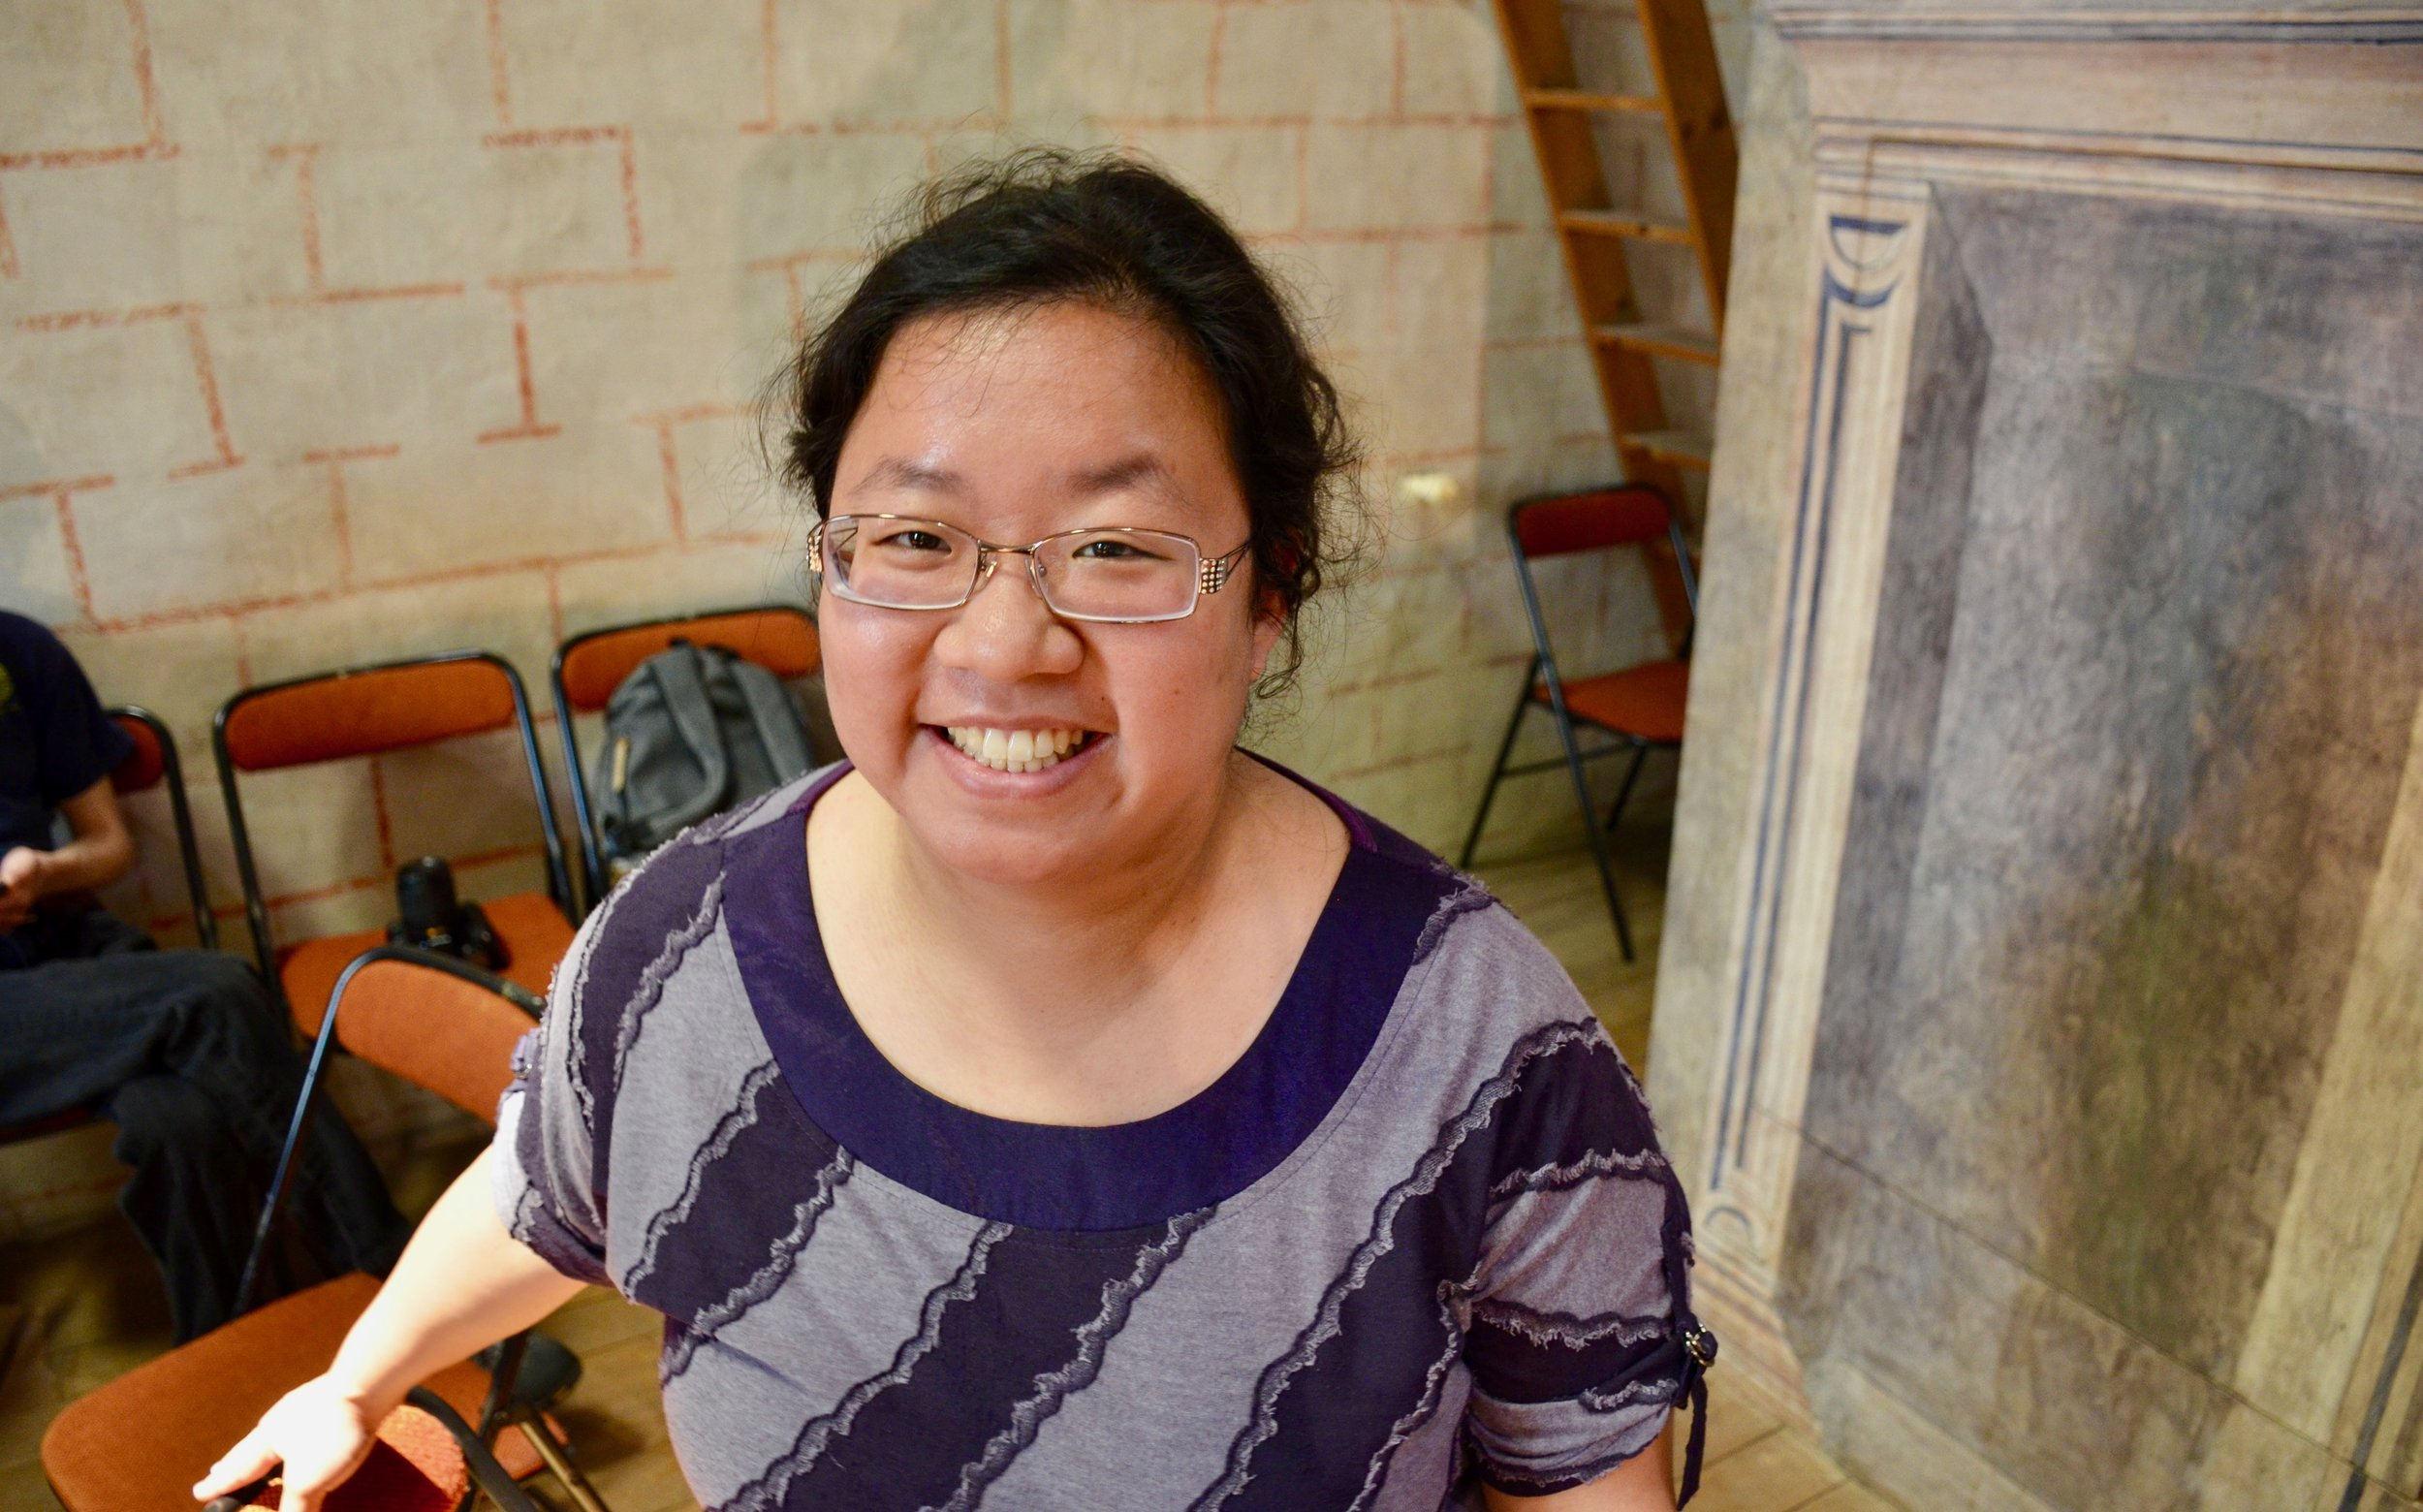 Jennifer Hsiao is all smiles at Musee des Augustins in Toulouse.